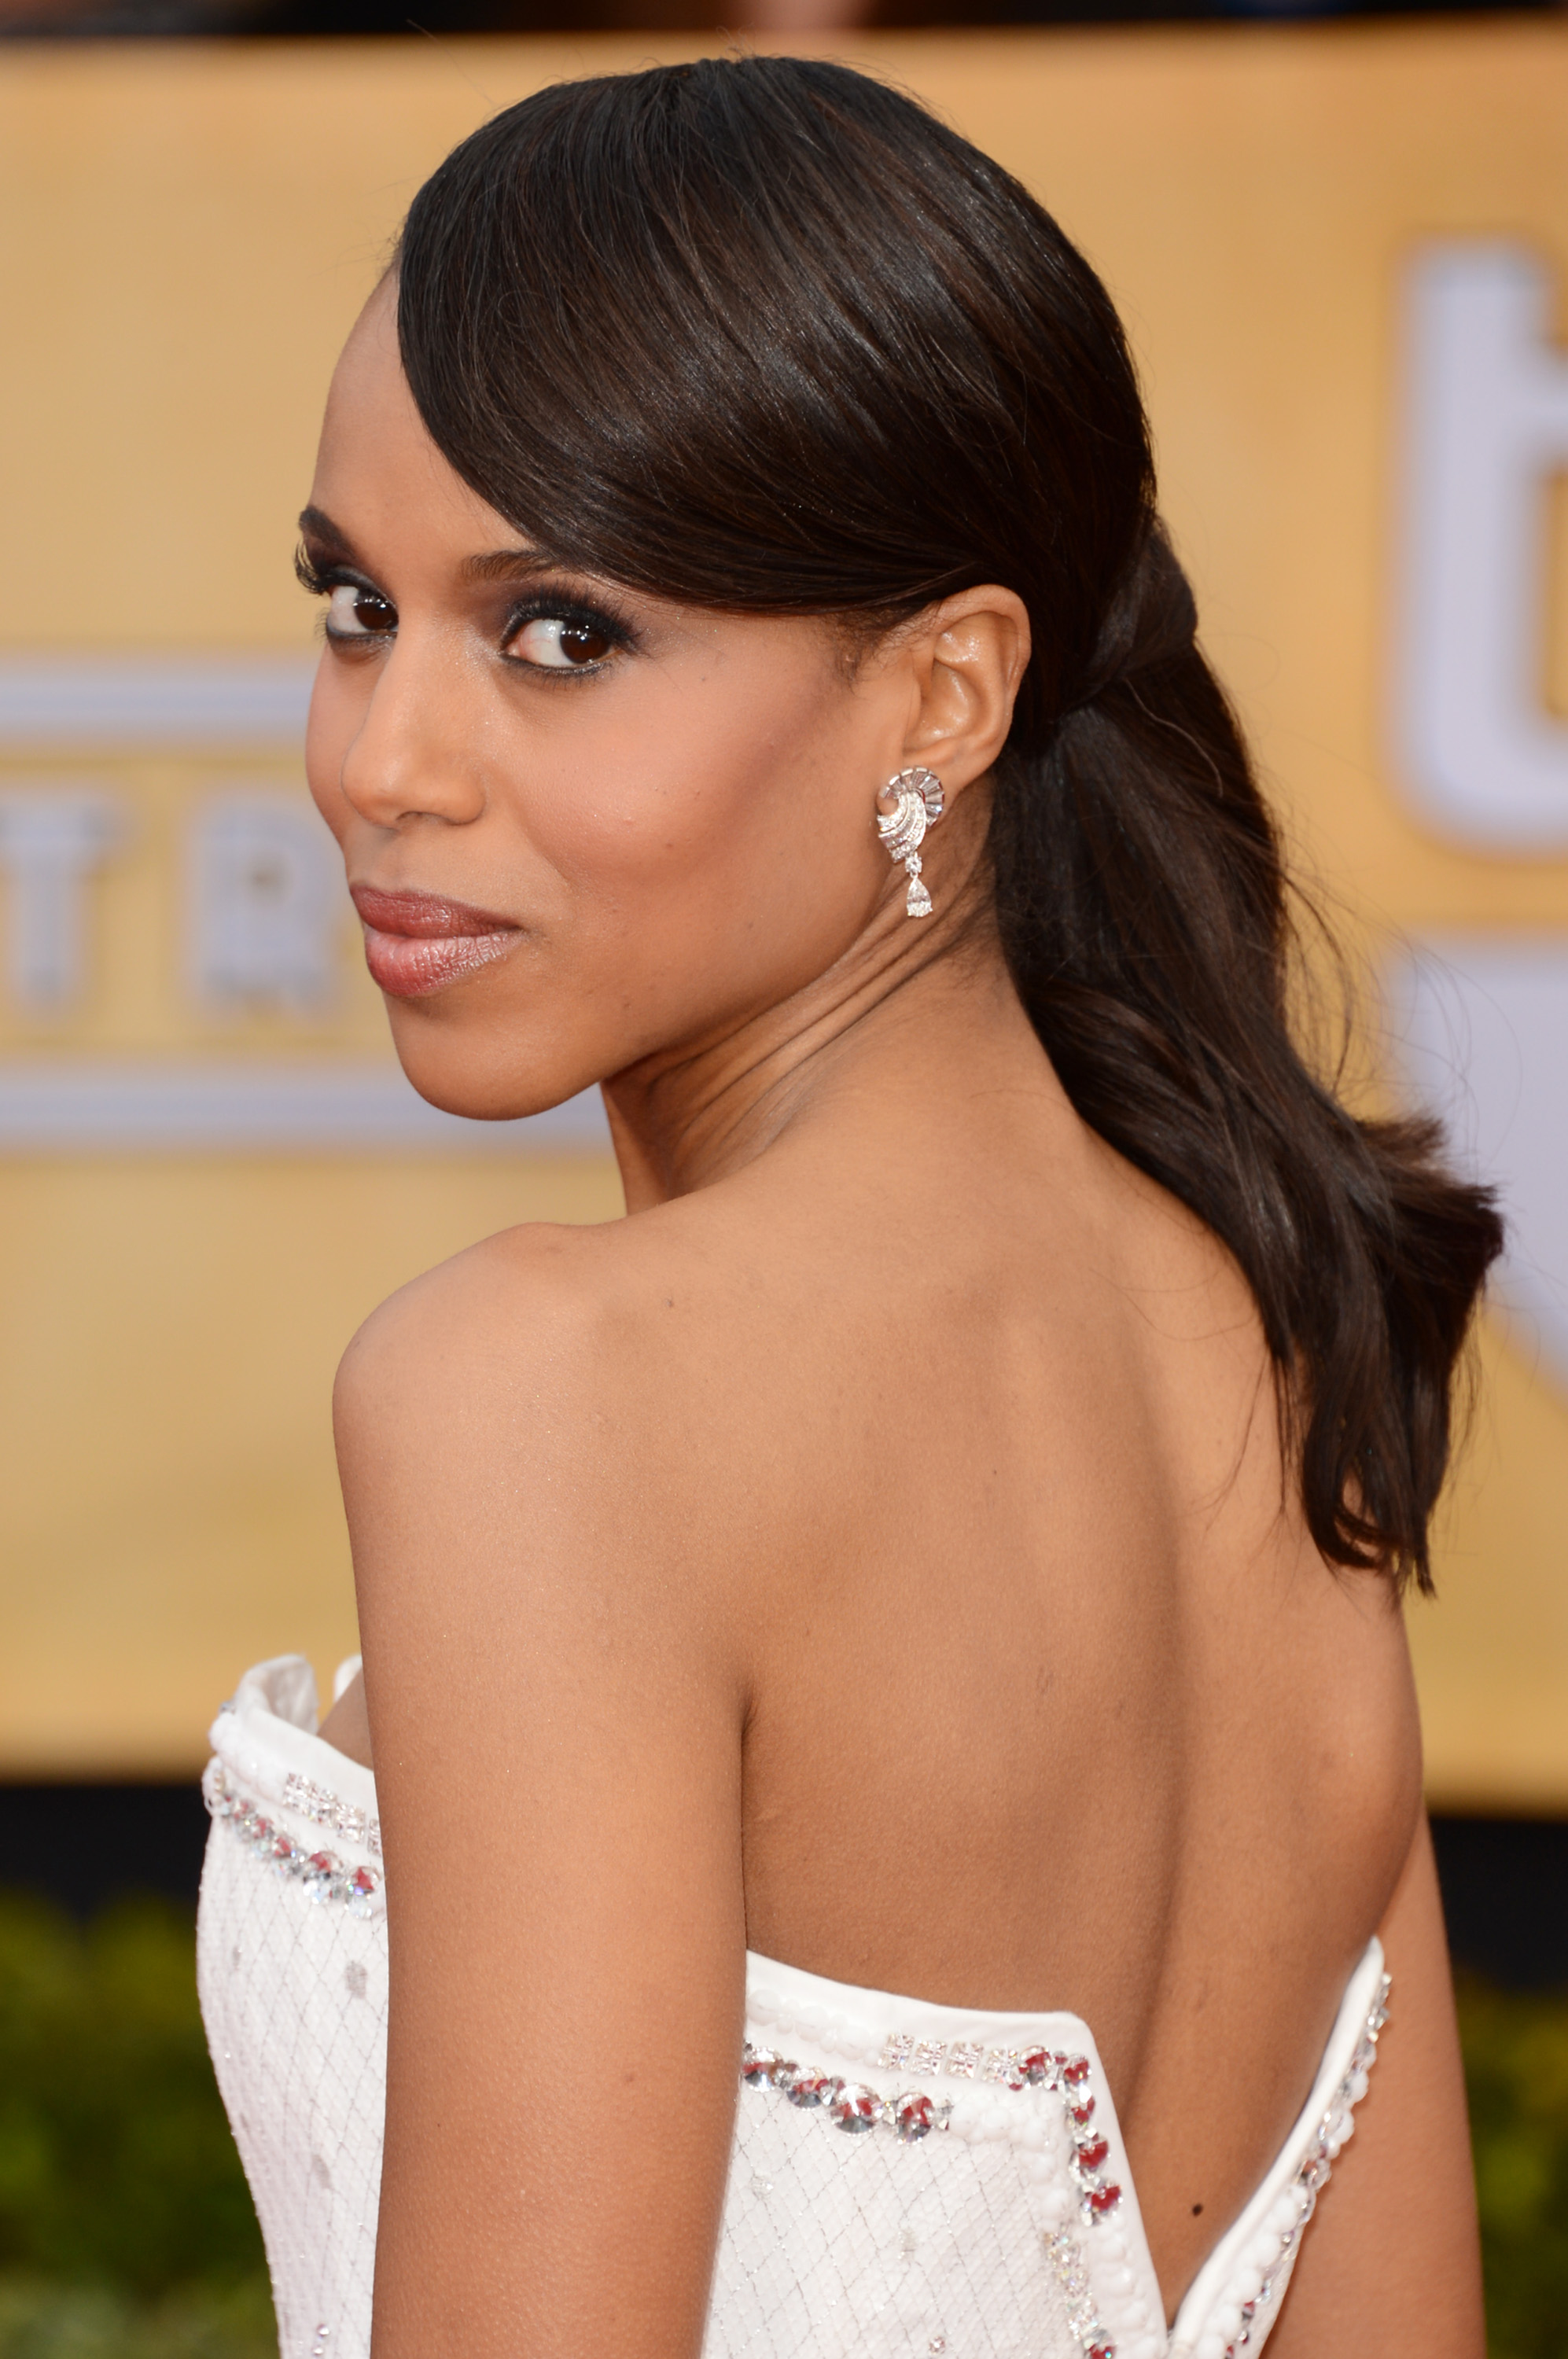 Best Of Hair At The 2013 Sag Awards Red Carpet Aol Lifestyle